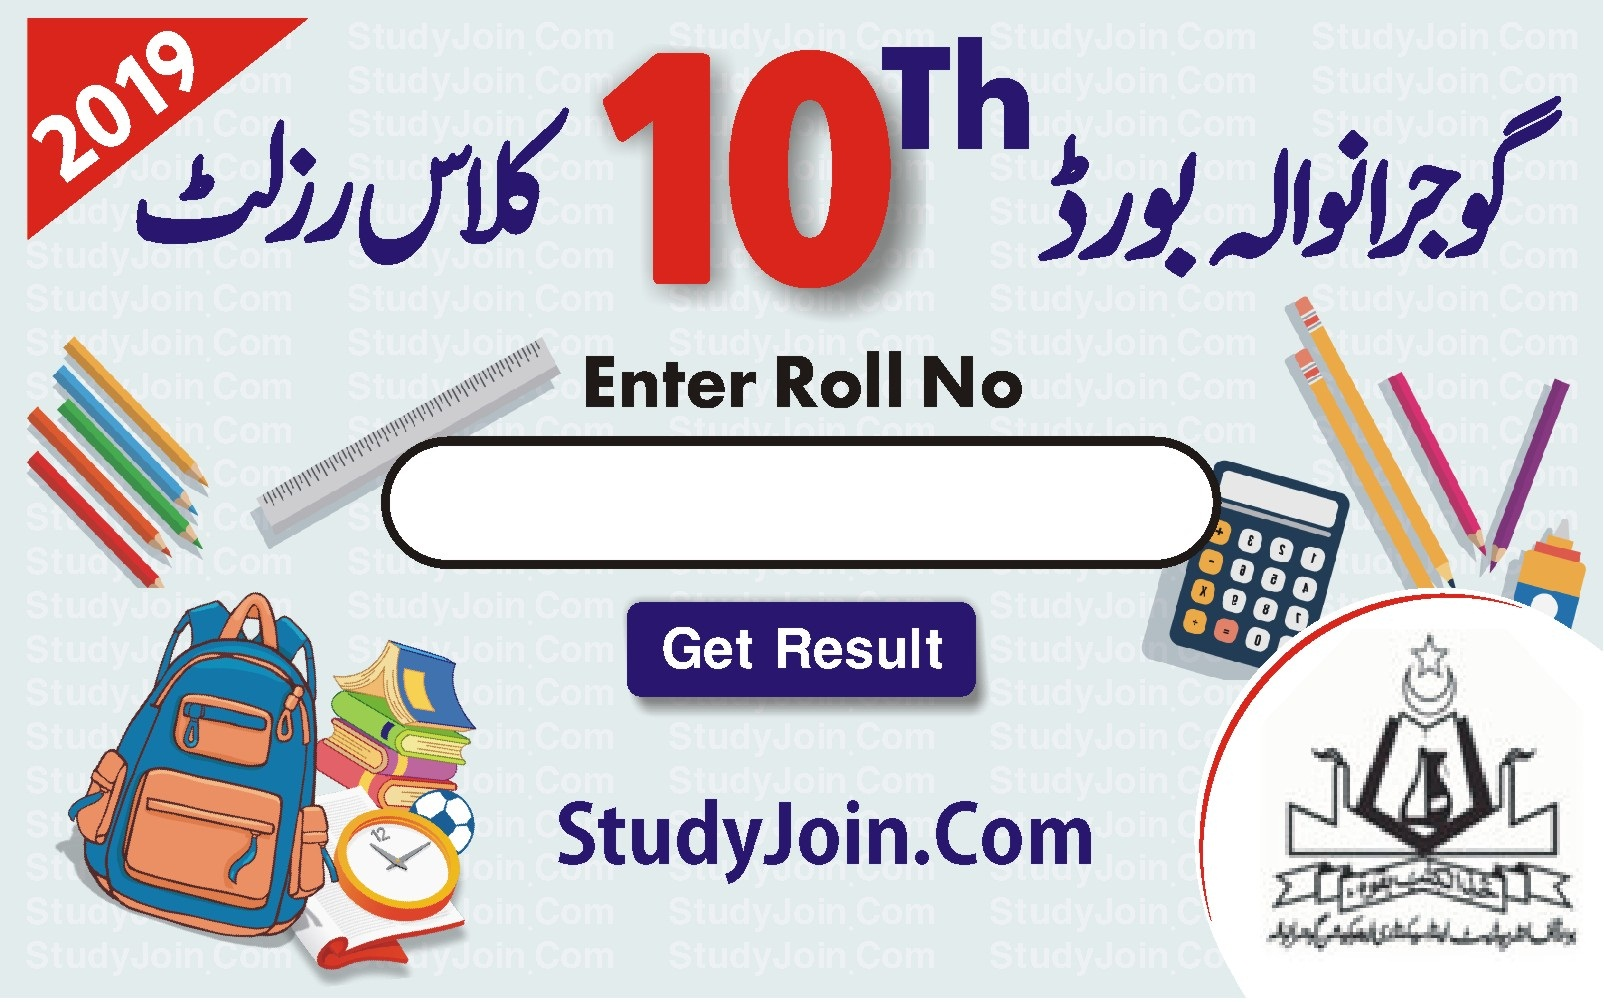 bise Gujranwala matric result 2019, 10th class result 2019 Gujranwala board, bise Gujranwala 10th result 2019 enter roll number, bise gujranwala 10th result 2019 enter roll number, 10 class result 2019 Gujranwala board, 10th class result 2019 Gujranwala board, bise gujranwala result 2019, bise gujranwala 9th result 2019, gujranwala board result 2019